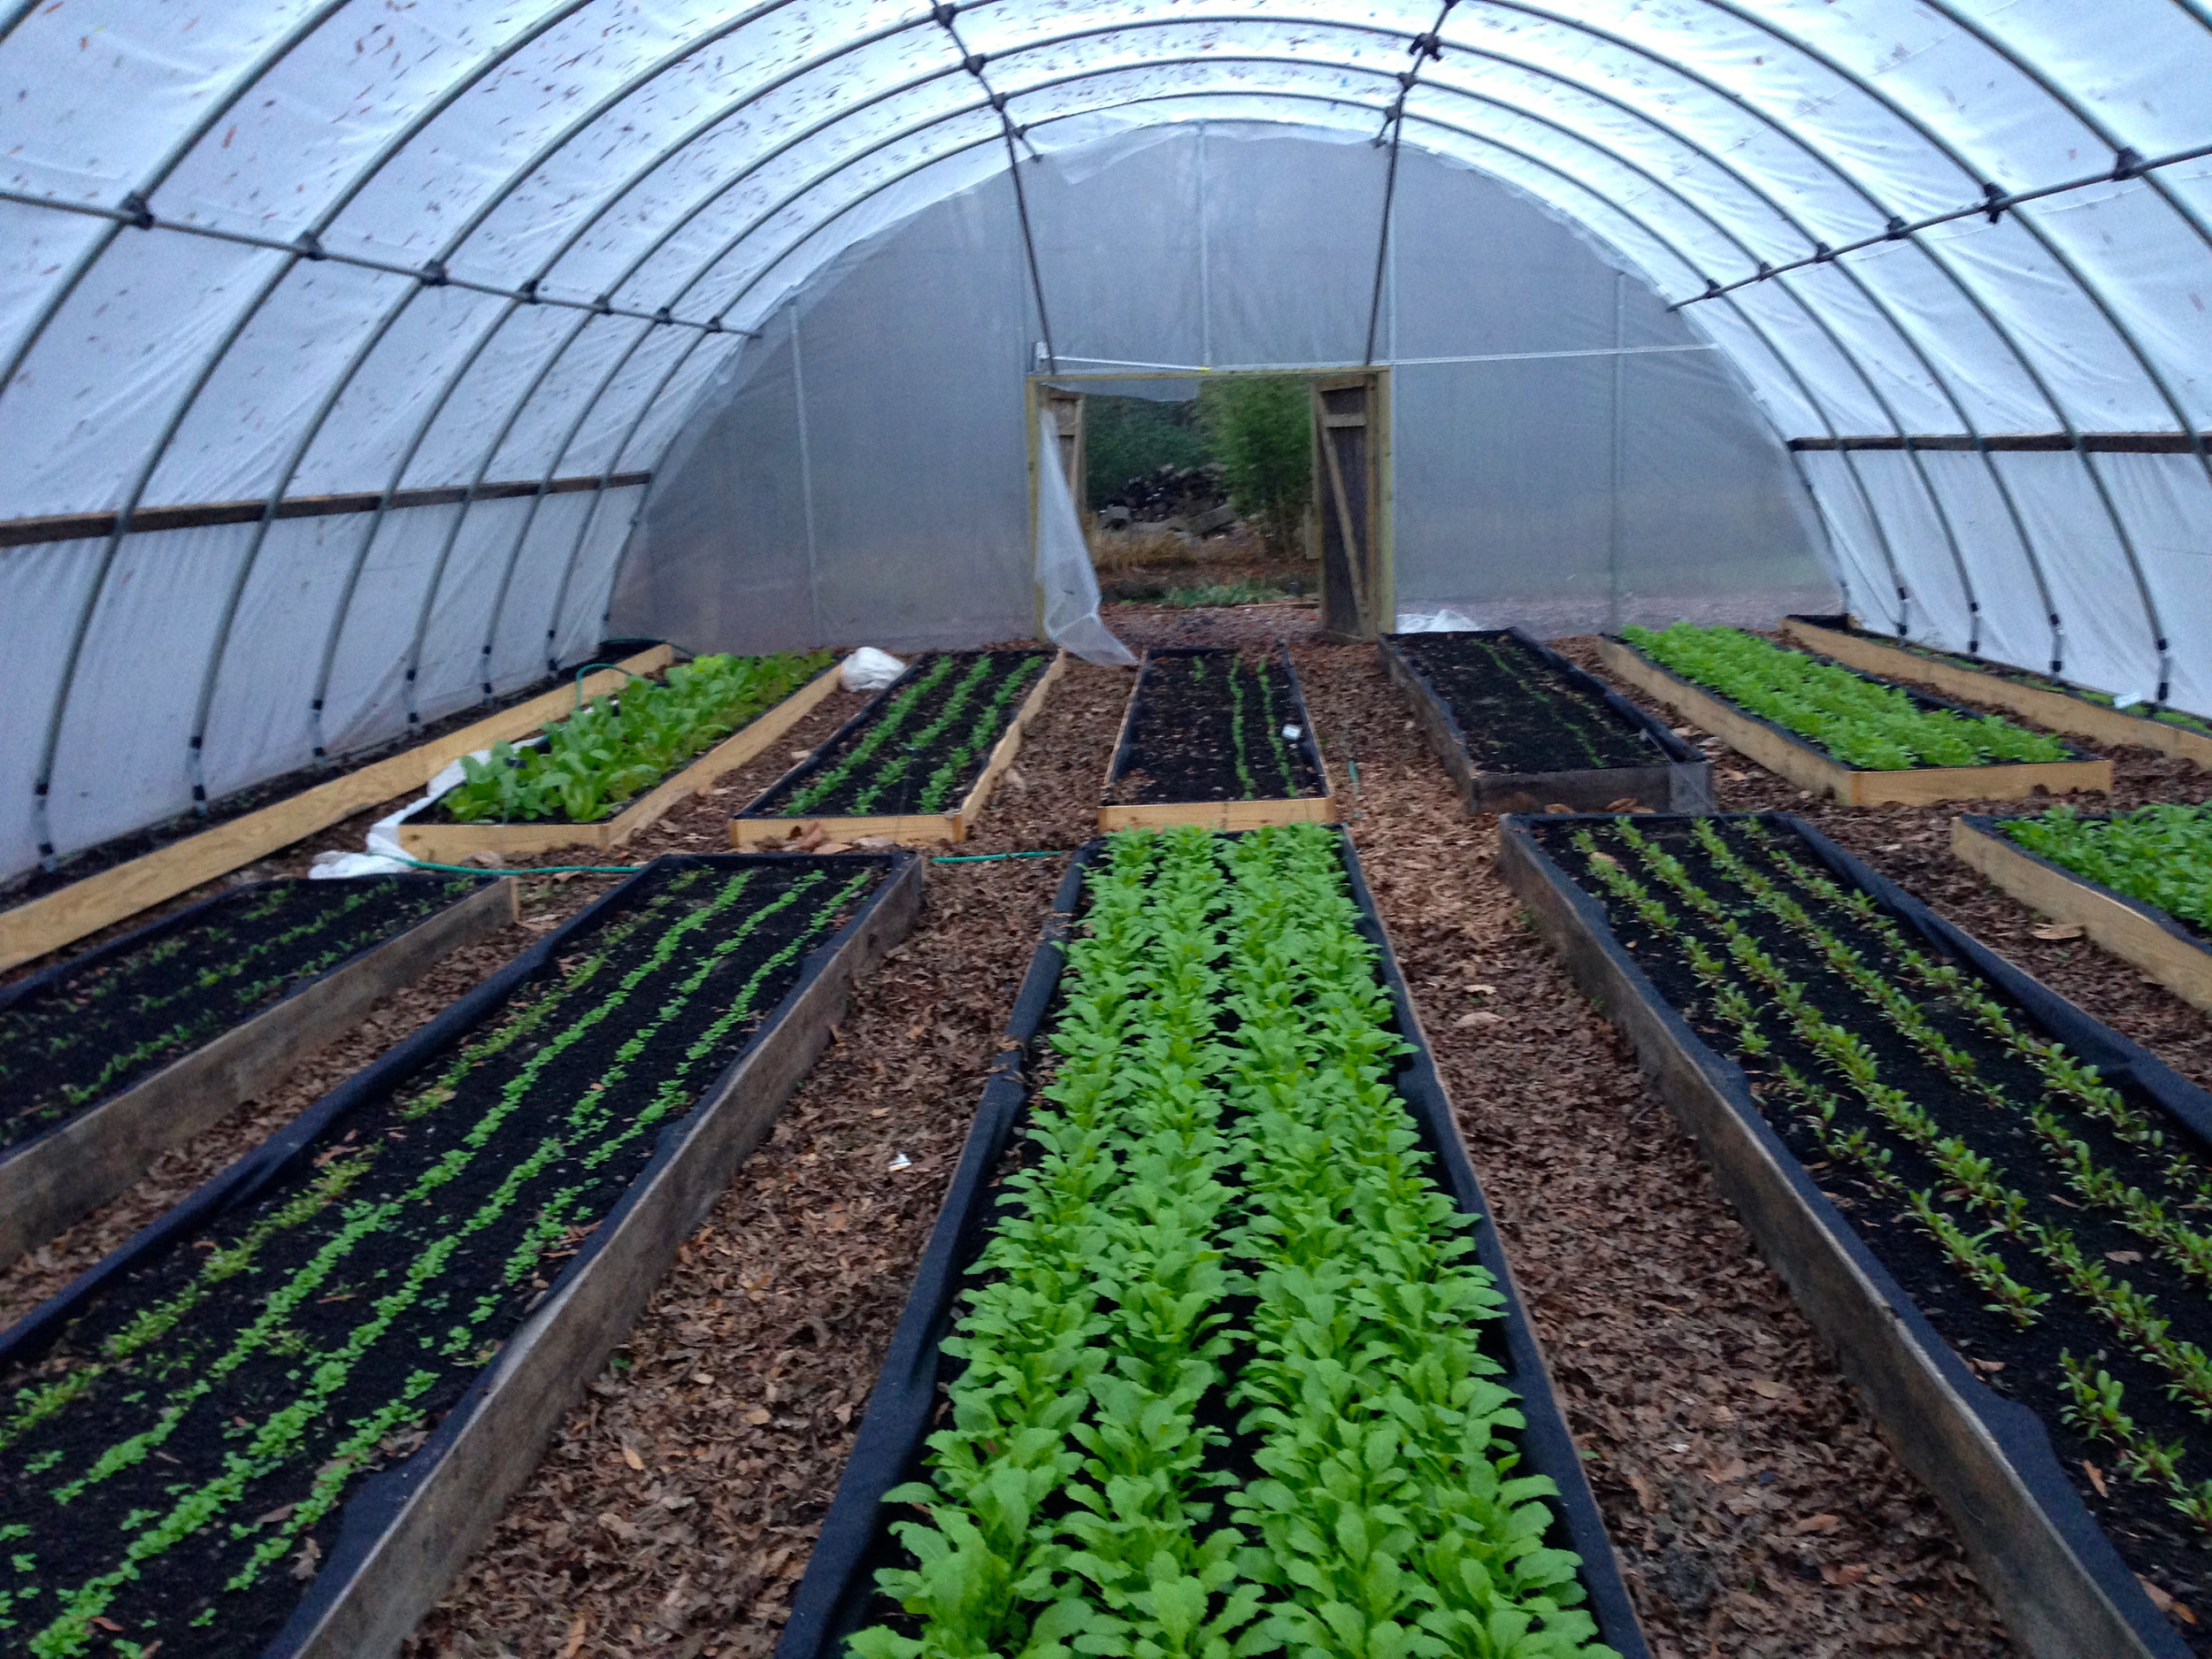 This hoop house has raised beds where lettuce transplants from our seed house have been used as well as directly seeded rows of more lettuces.